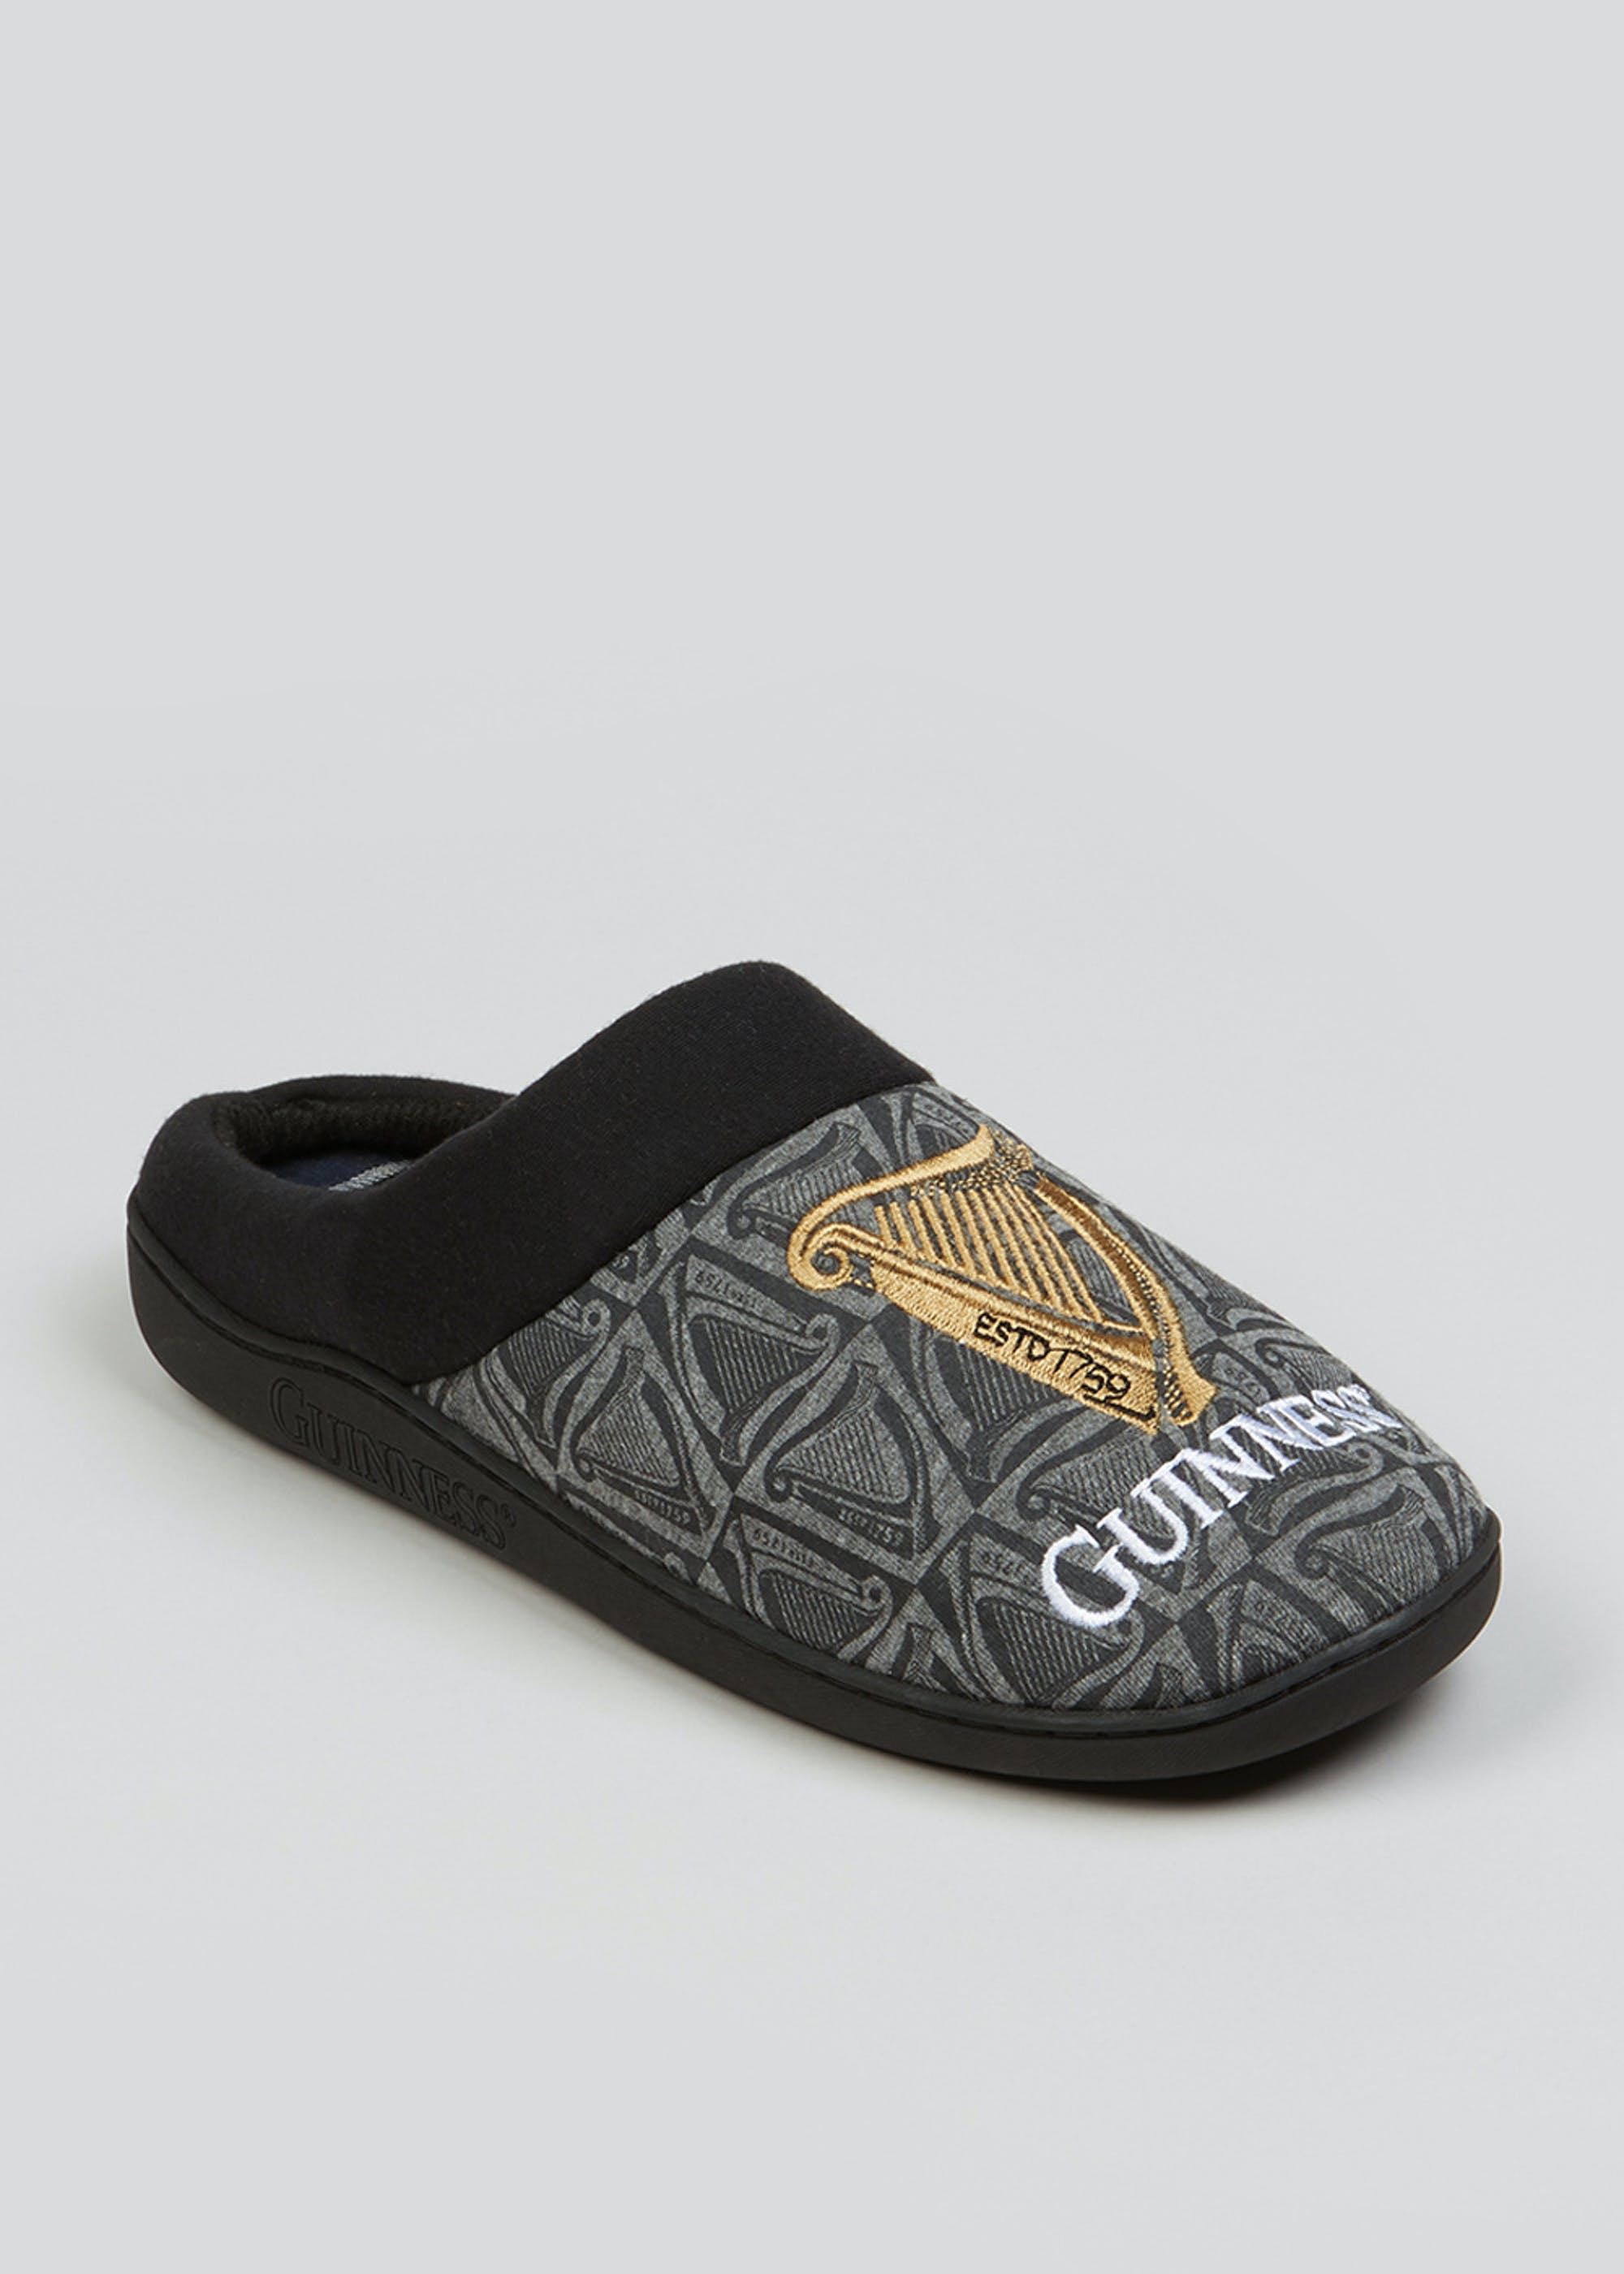 Black Guinness Mule Slippers Black SyqRQv